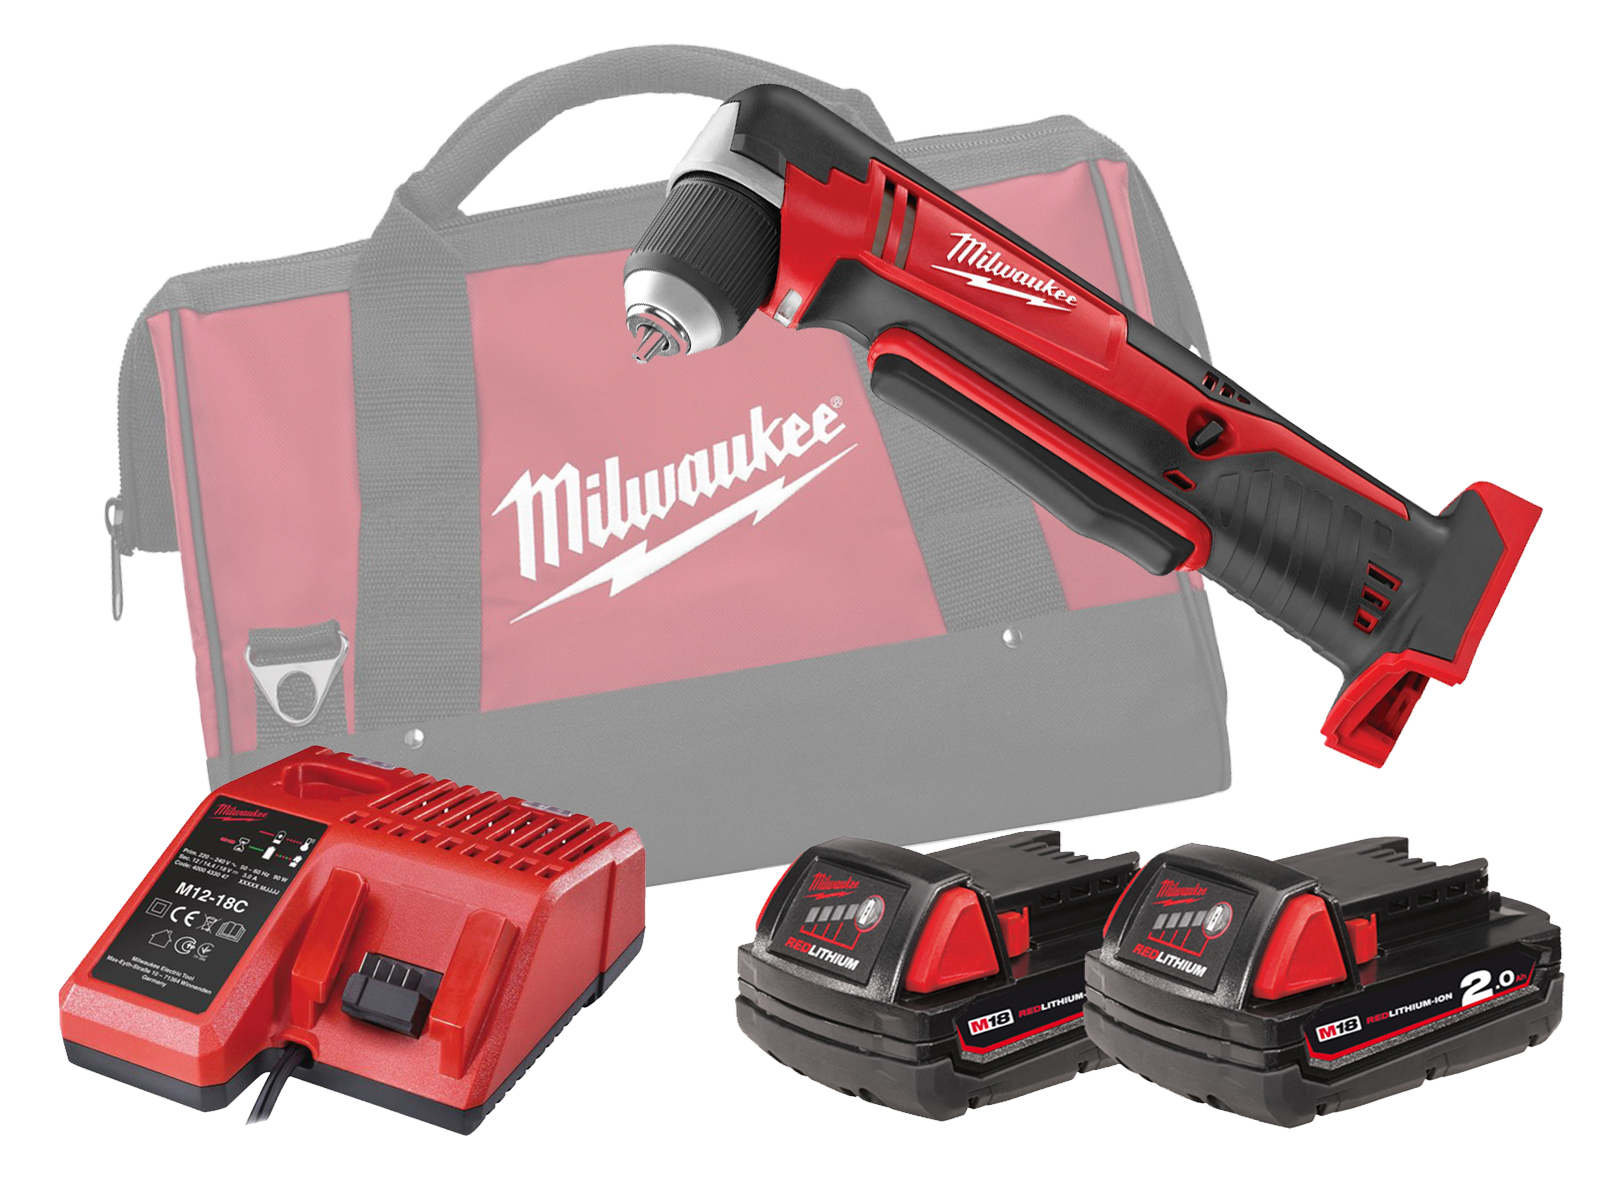 MILWAUKEE 18V COMPACT RIGHT ANGLE DRILL - C18RAD - 2.0AH PACK